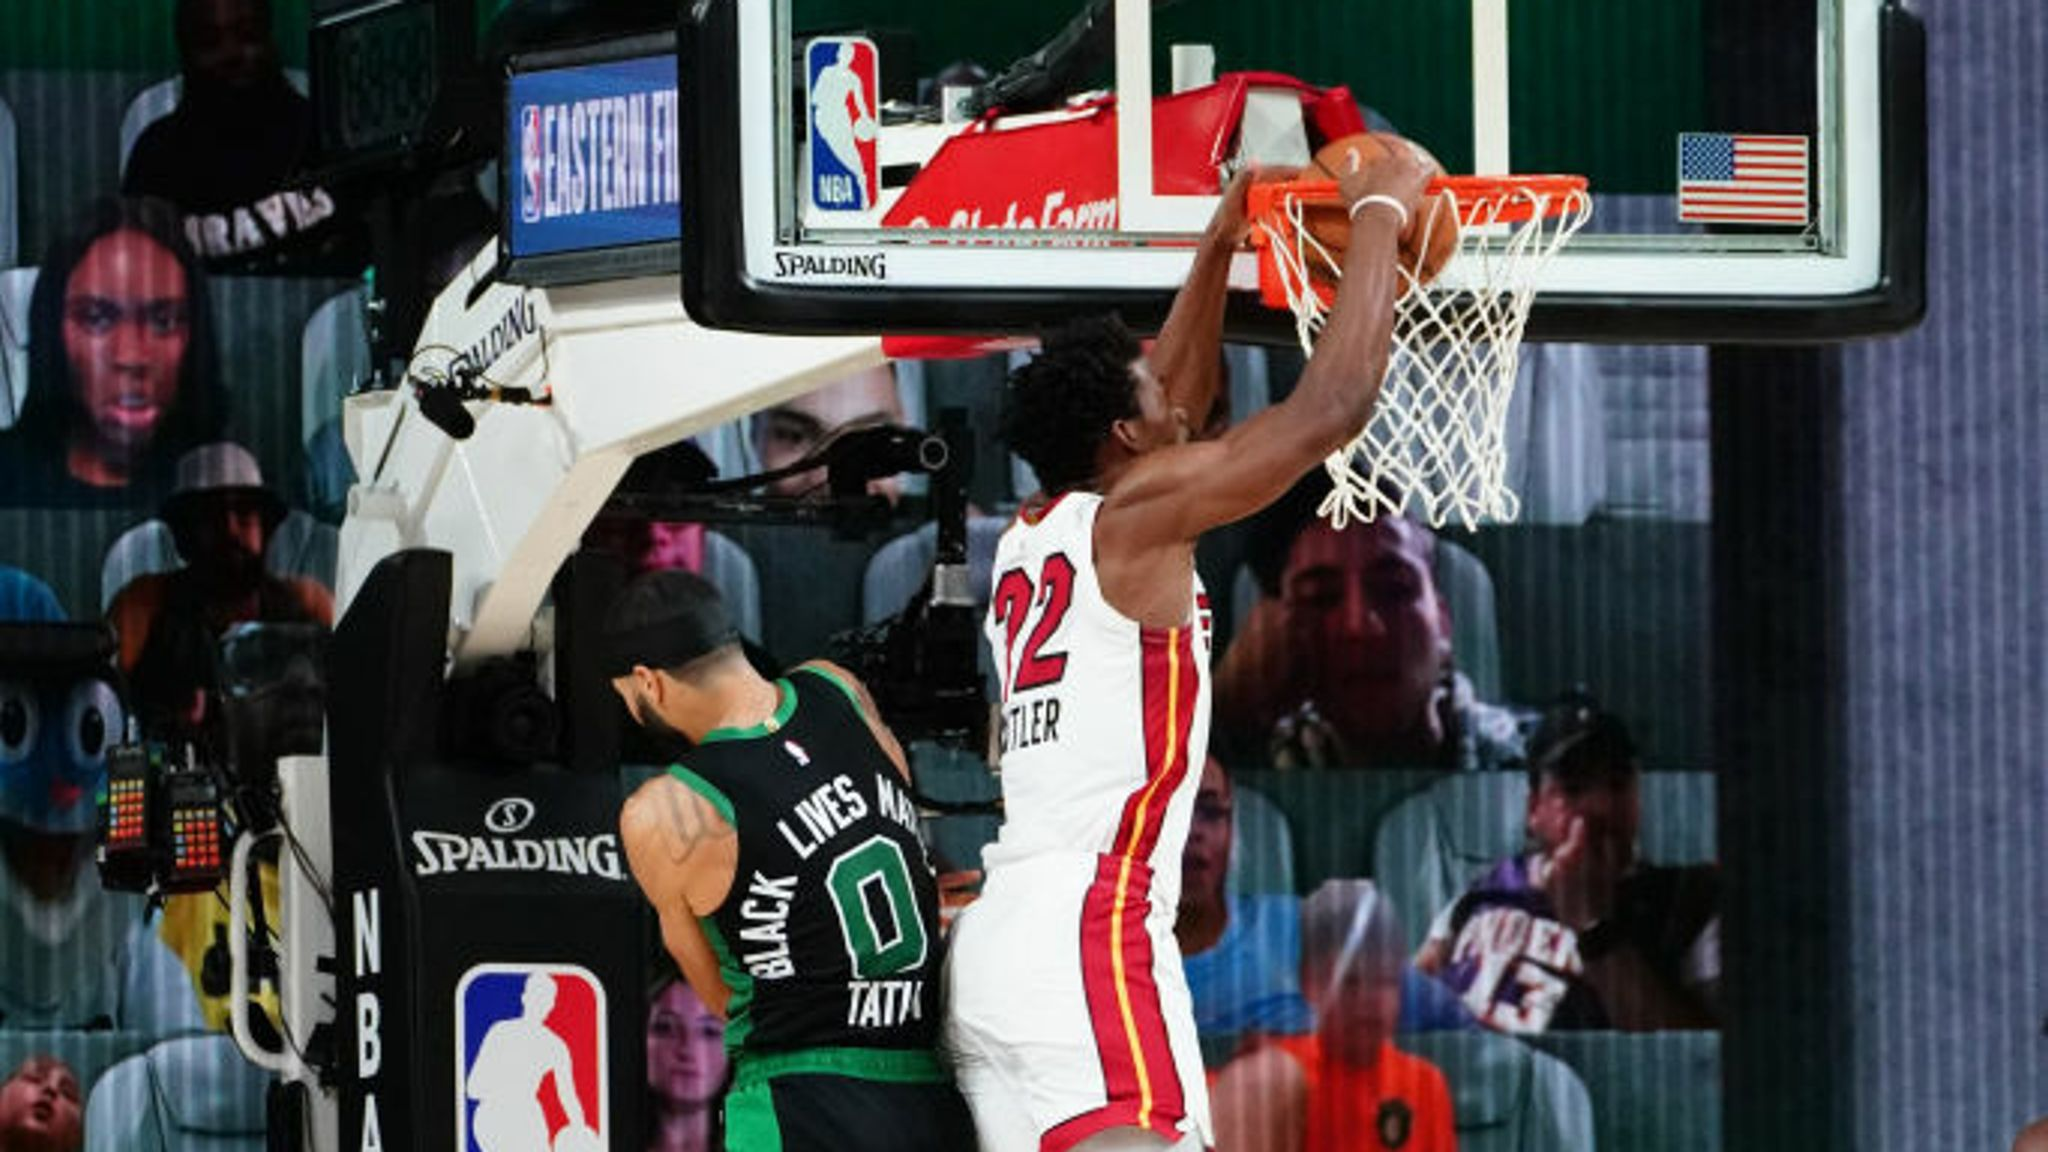 Jimmy Butler #22 of the Miami Heat dunks the ball against Jayson Tatum #0 of the Boston Celtics during Game Two of the Eastern Conference Finals of the NBA Playoffs on September 17, 2020 at the AdventHealth Arena at ESPN Wide World Of Sports Complex in Orlando, Florida.